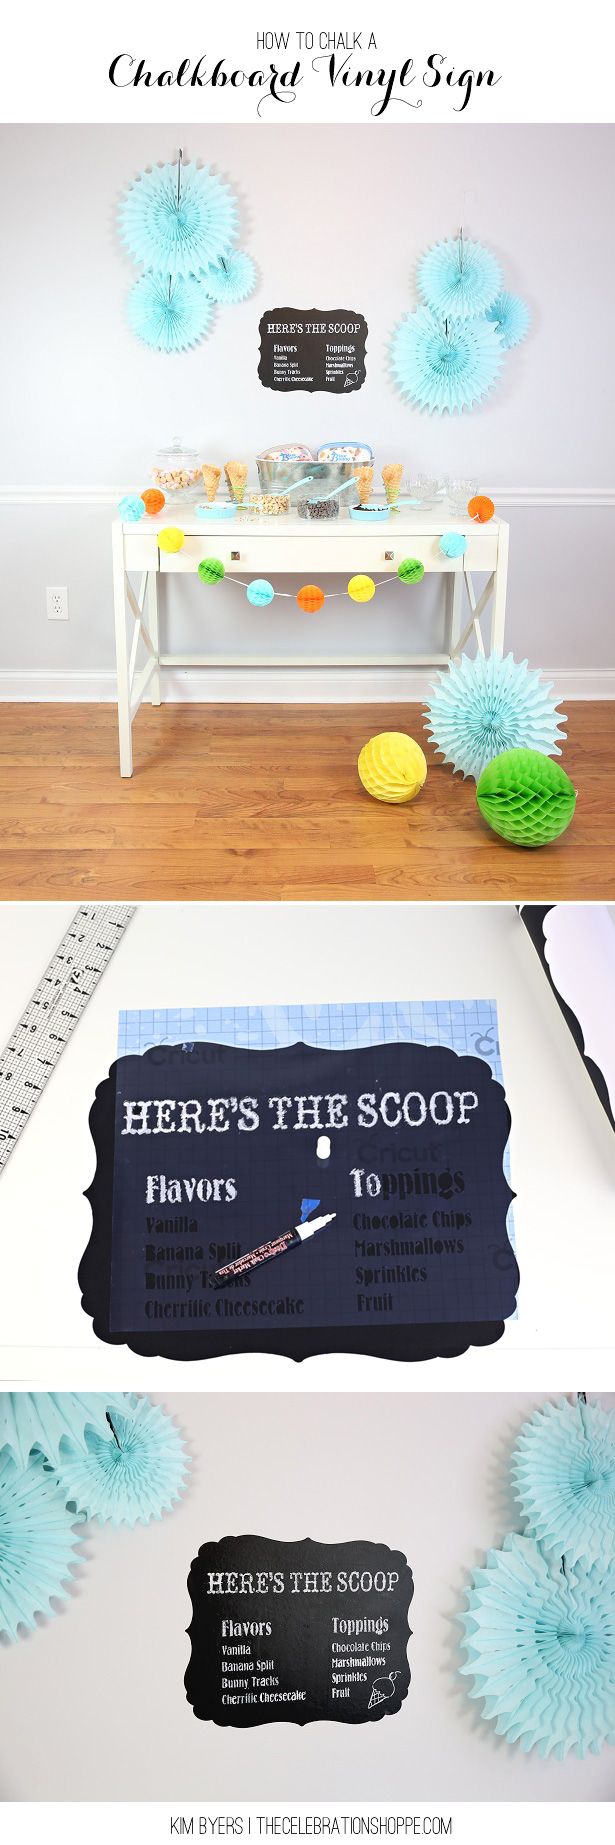 How to craft a chalkboard sign kim byers